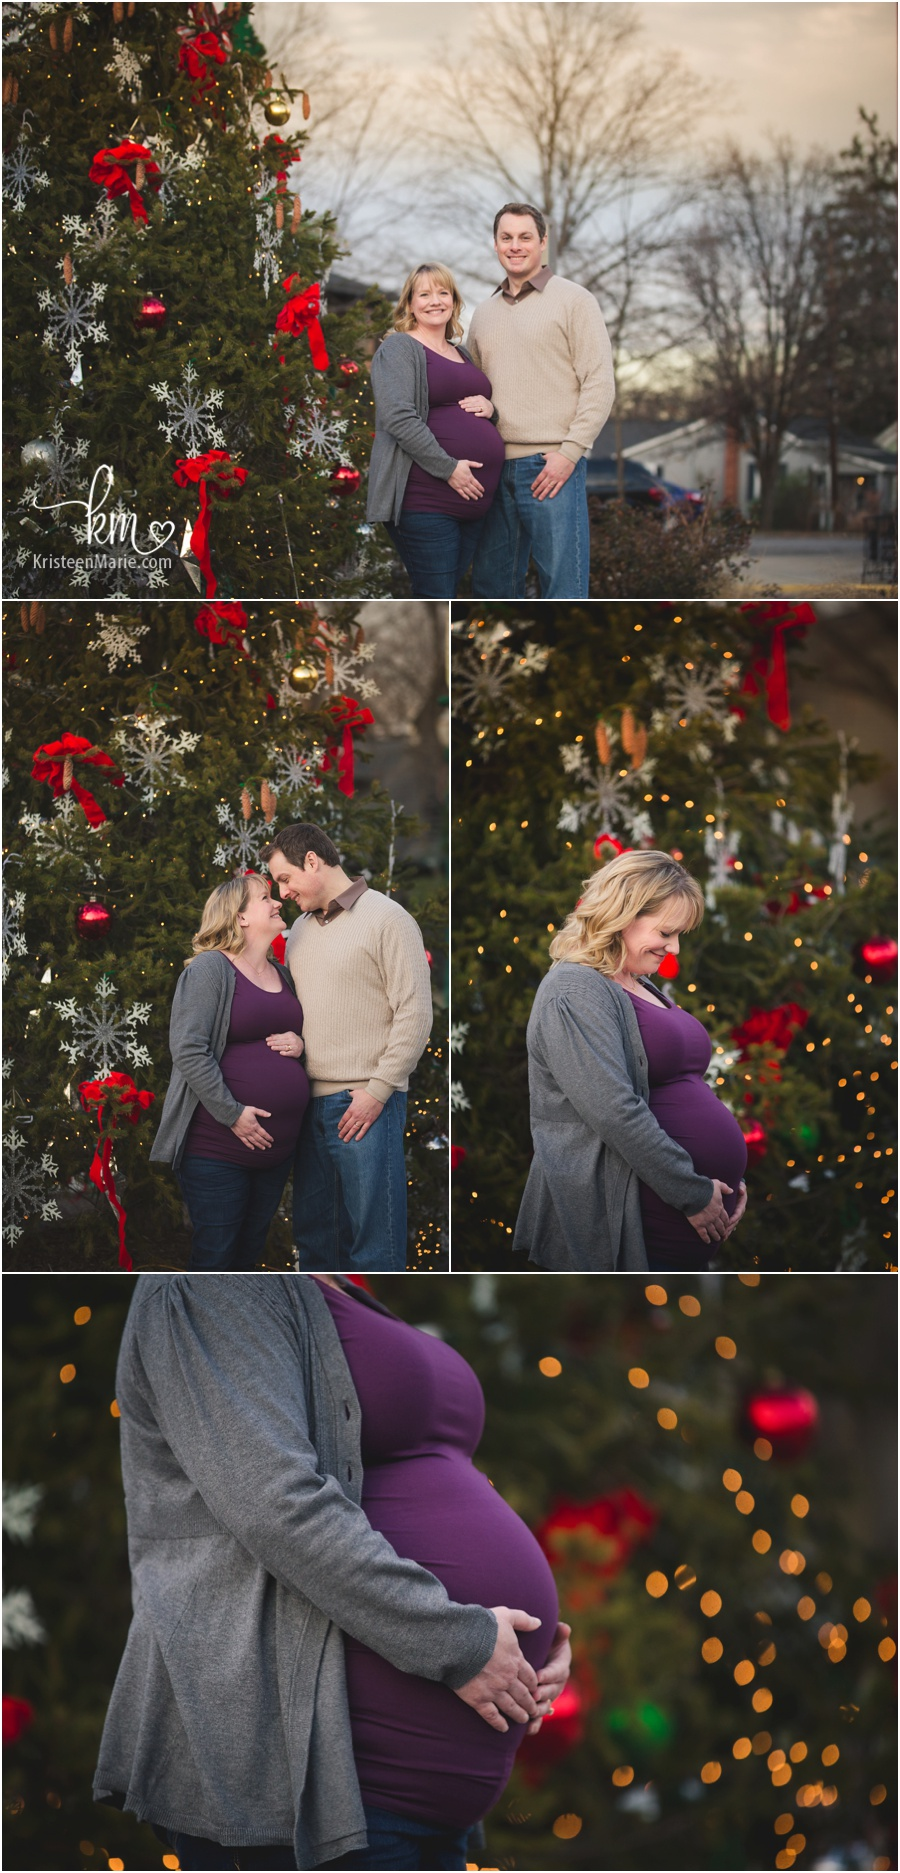 holiday themed maternity photography - expecting couple in front of Christmas tree